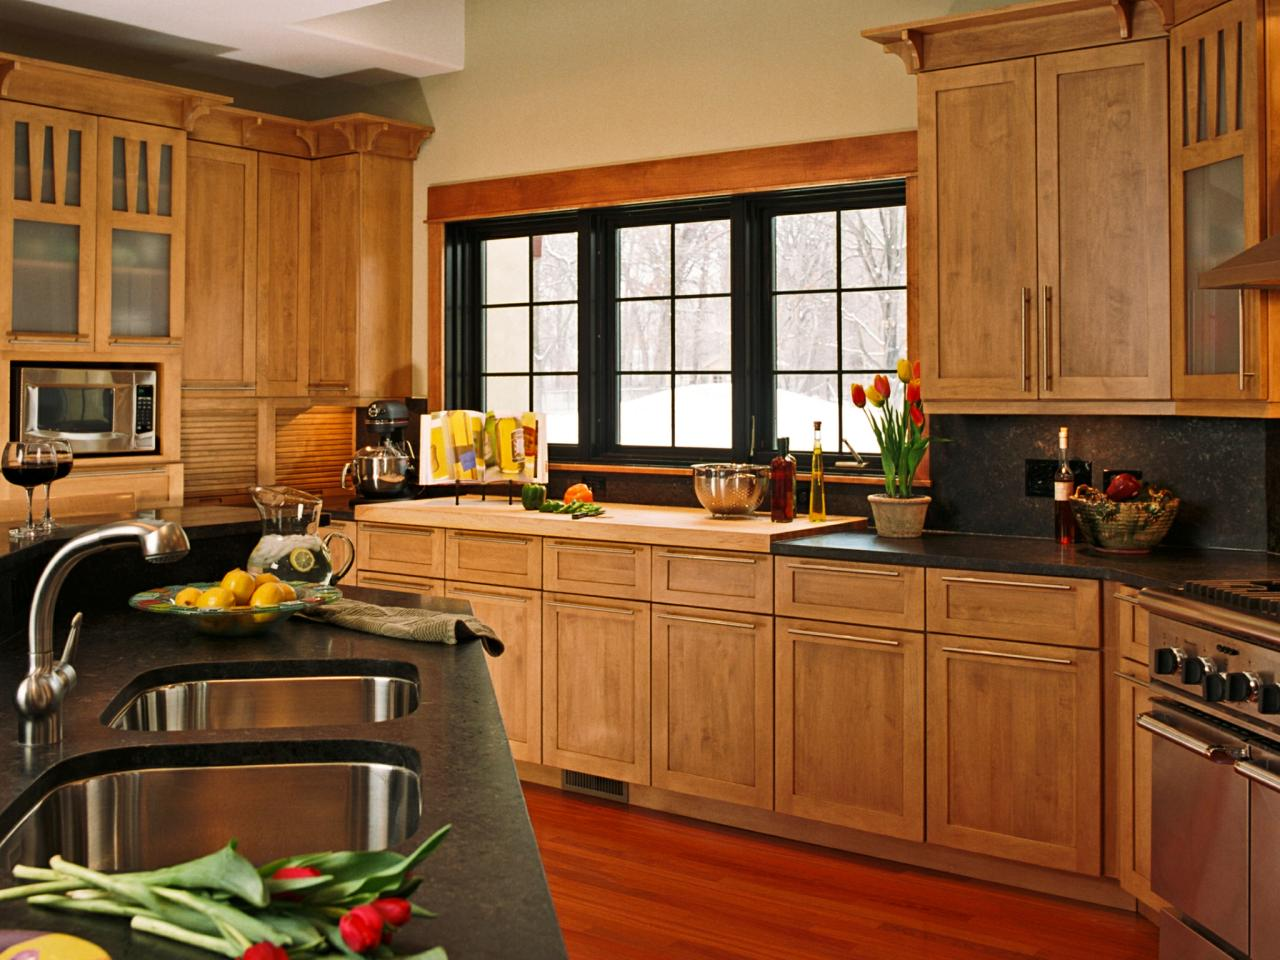 mission style kitchen cabinets - In Style Kitchen Cabinets